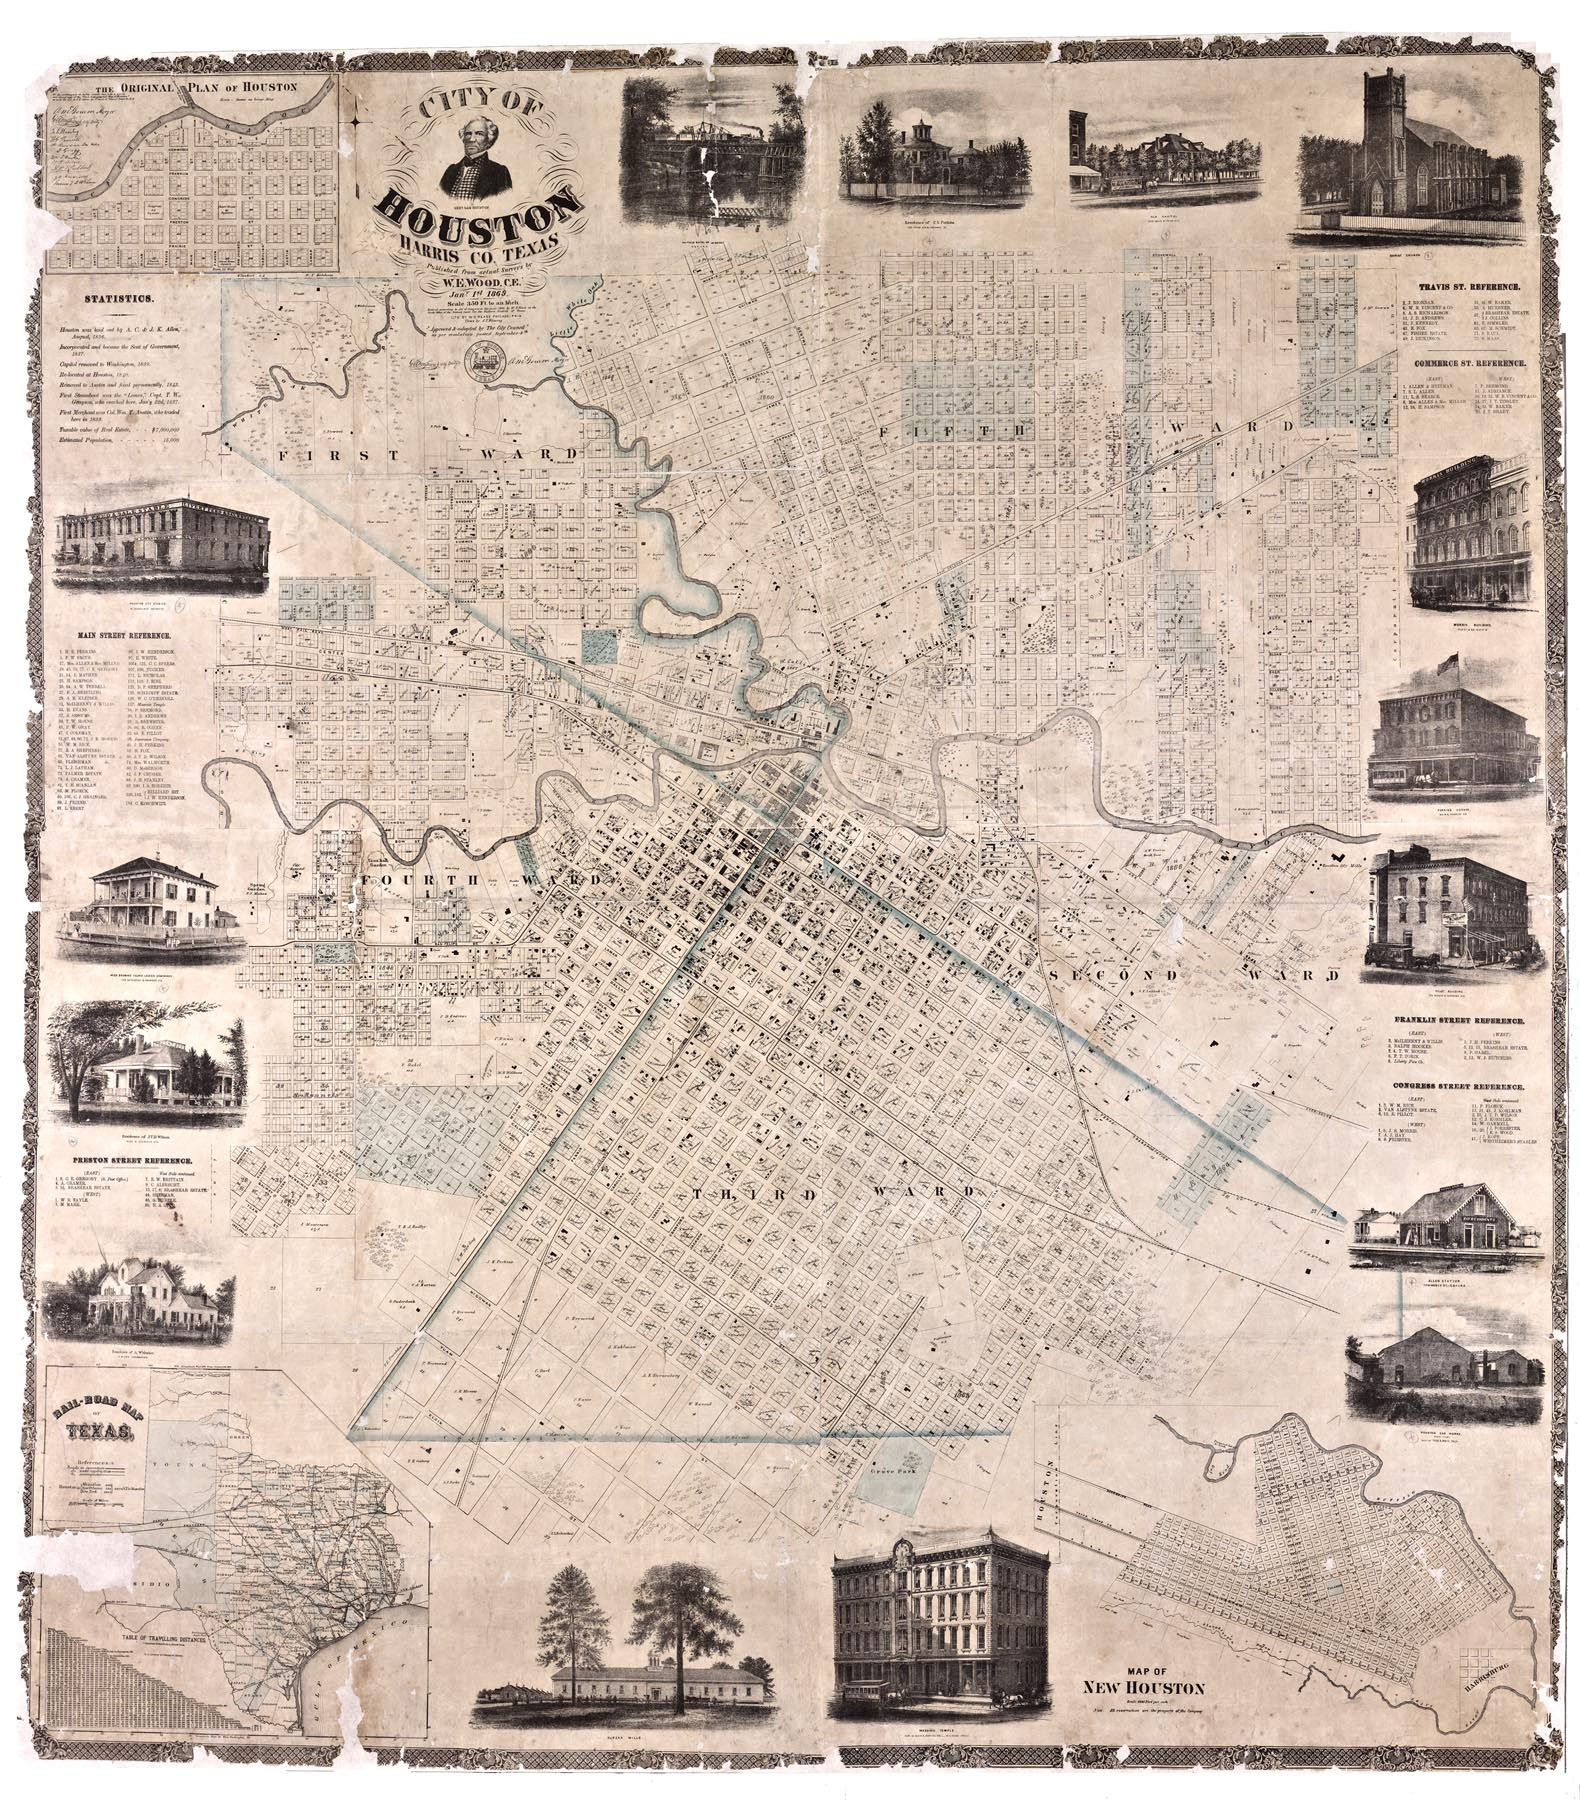 1869 Wood Houston Map 1869 Wood Houston